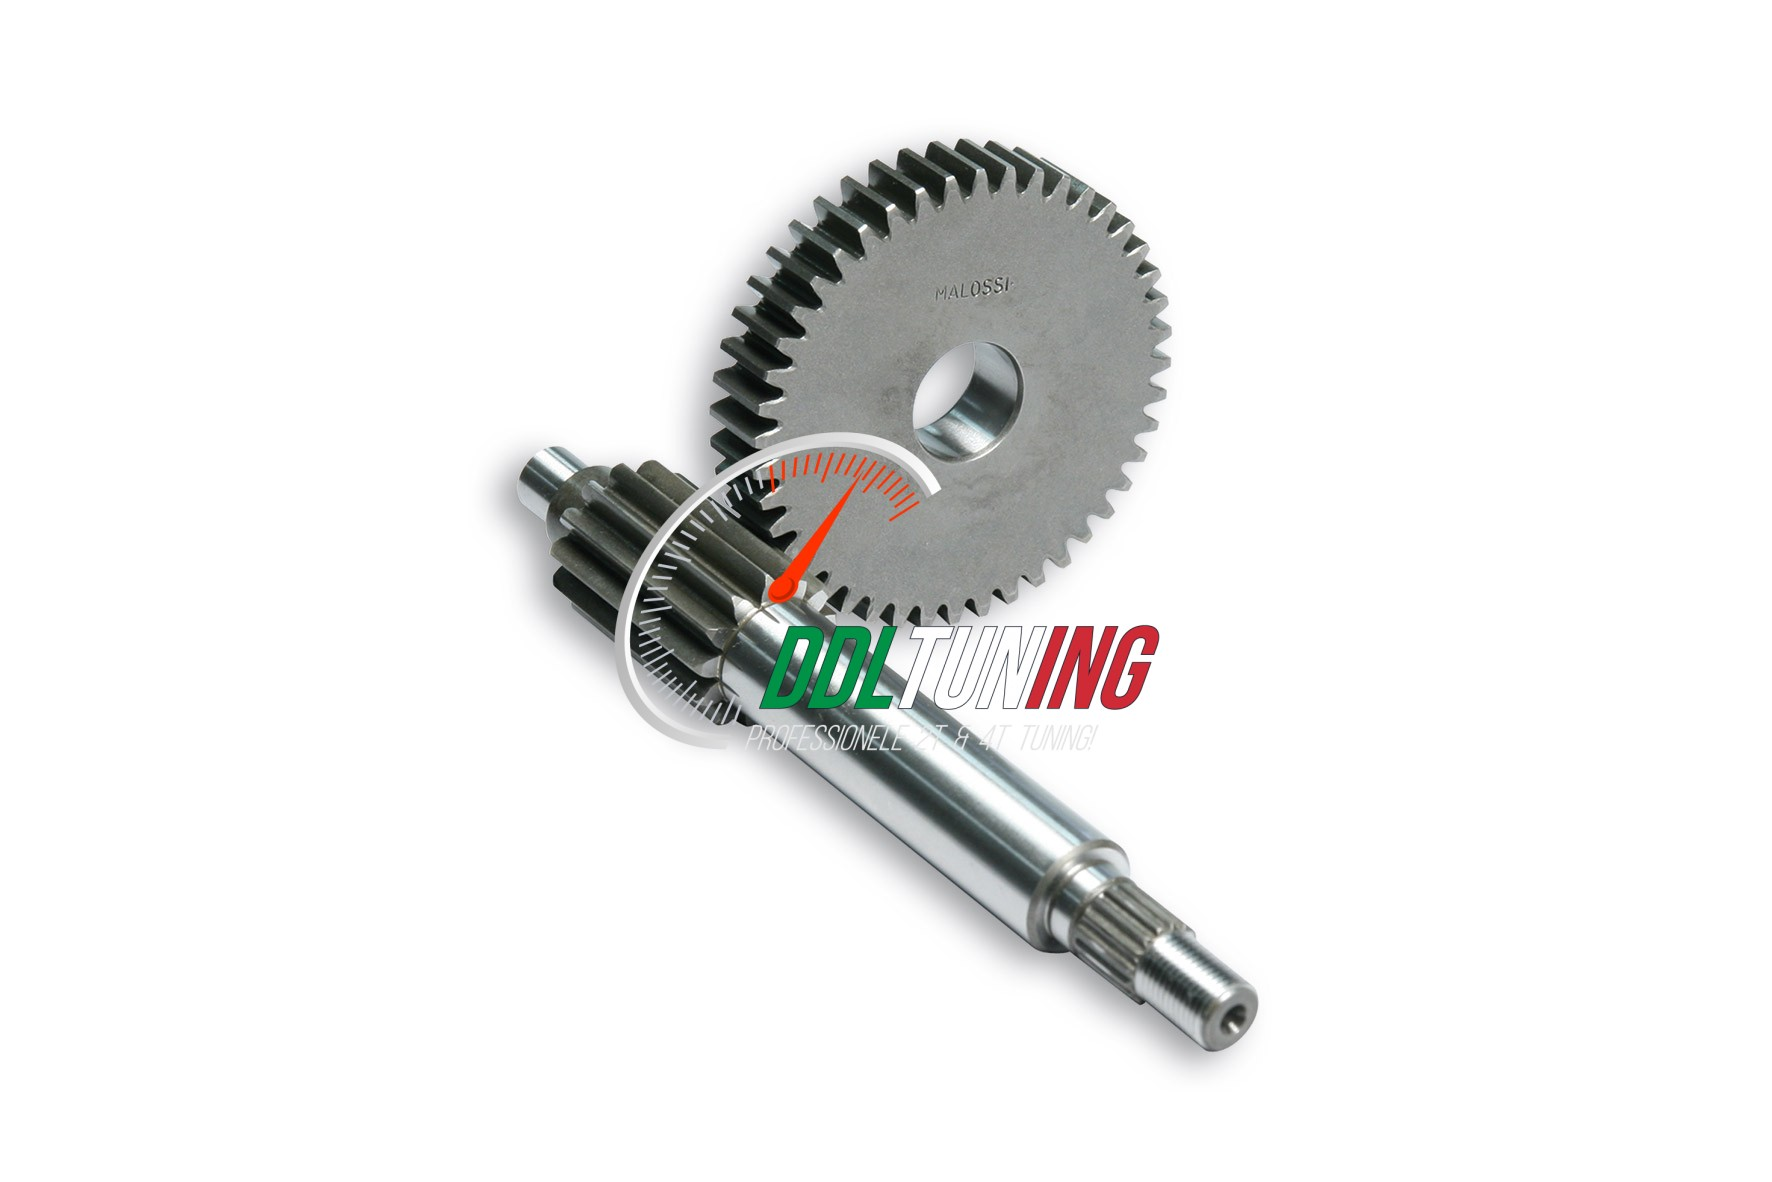 overbrengingset primair f12 lc rst 13/44t malossi 6711664